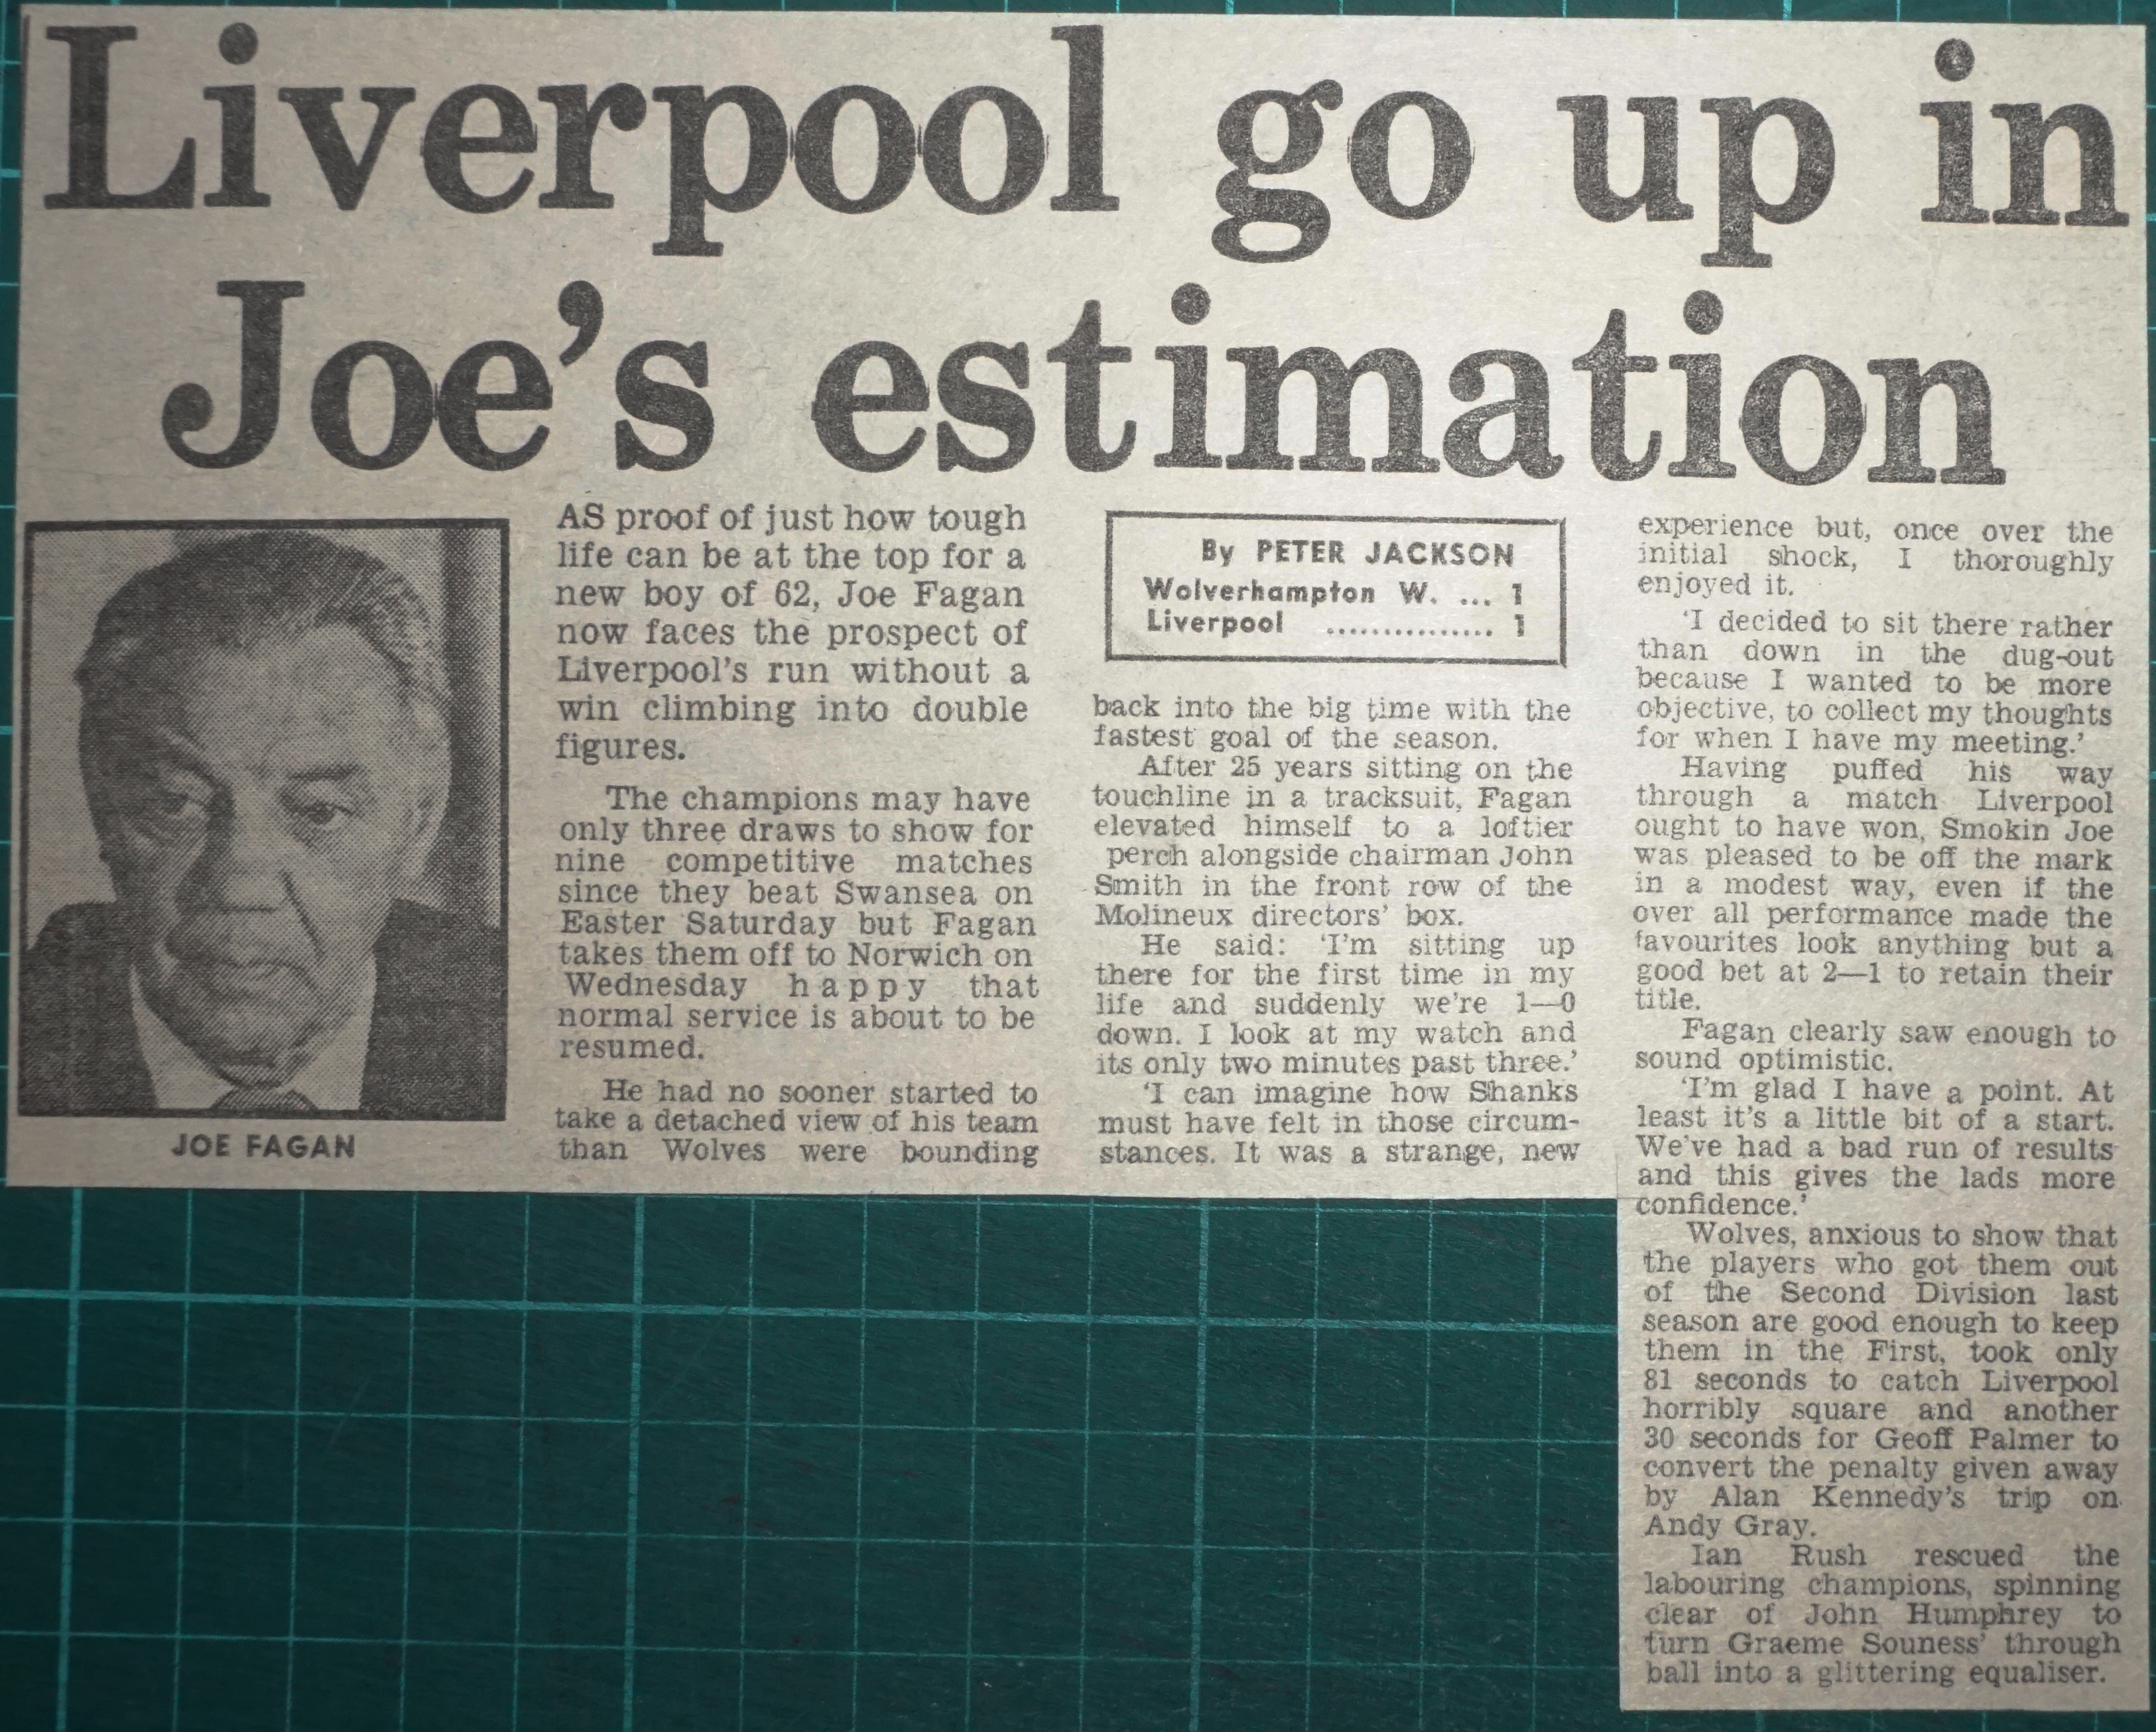 Liverpool go up in Joe's estimation - 24 August 1983